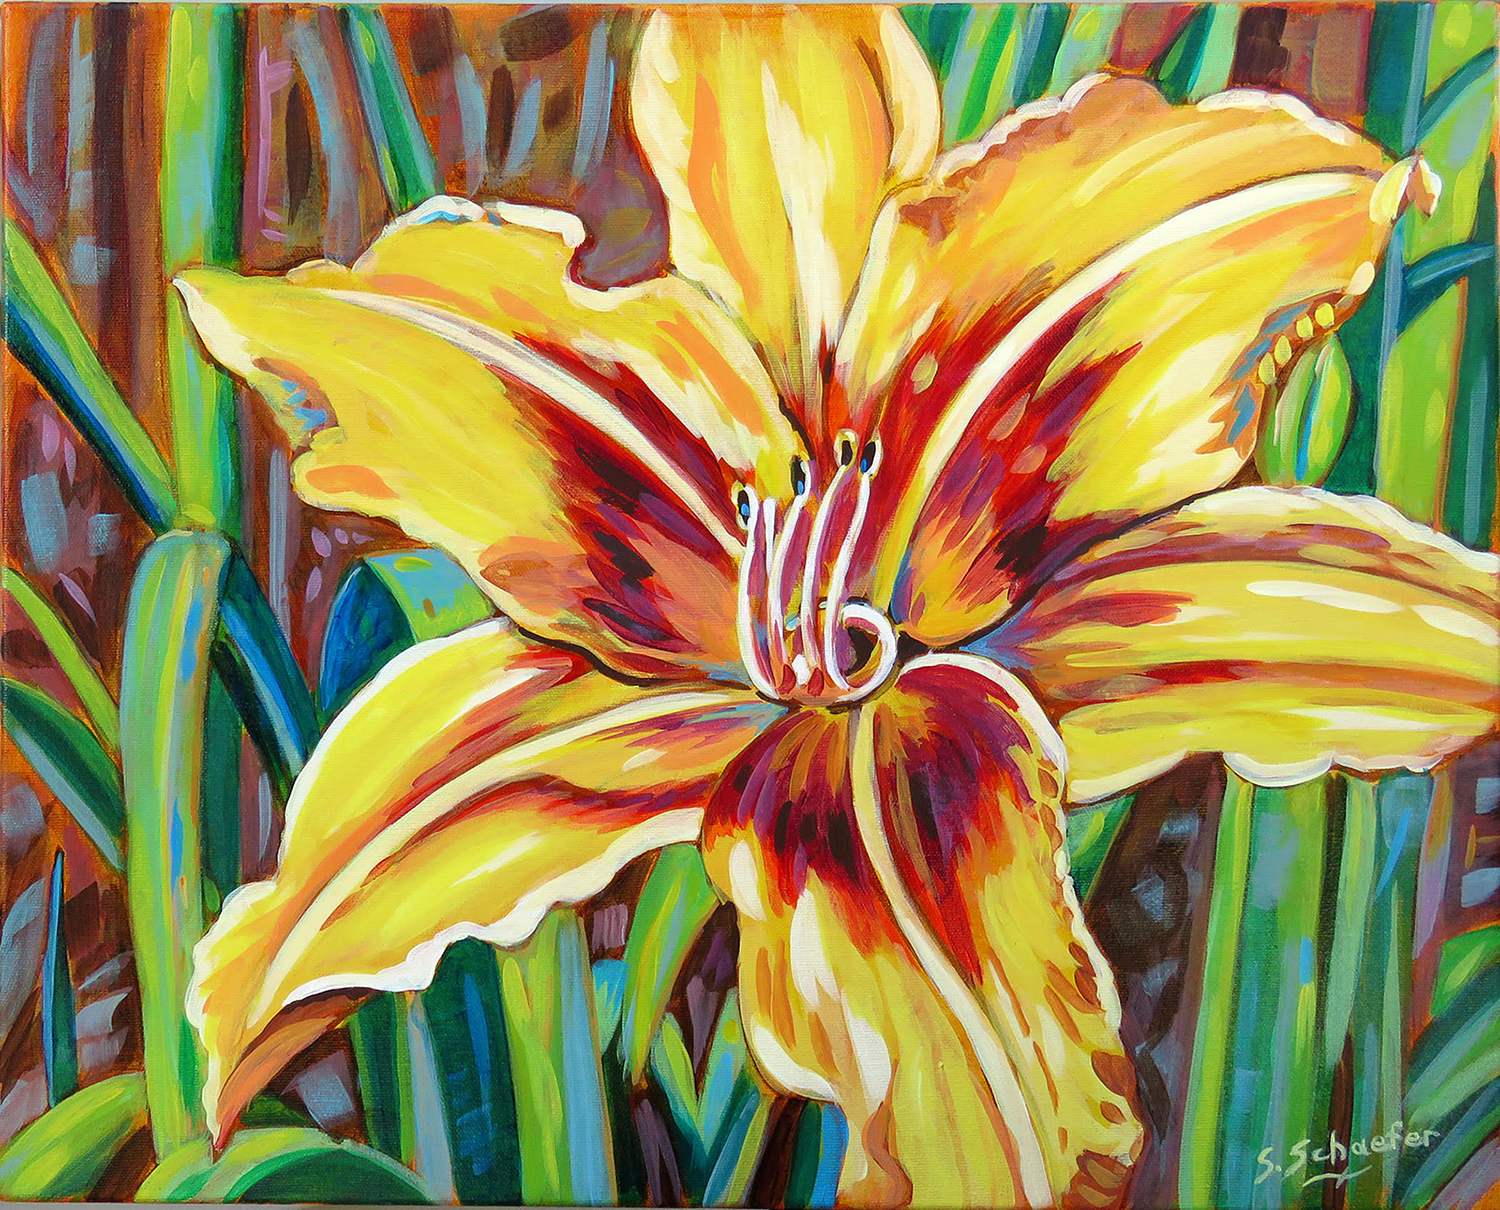 Exploring Florals – Painting with Glazes with Susan Schaefer